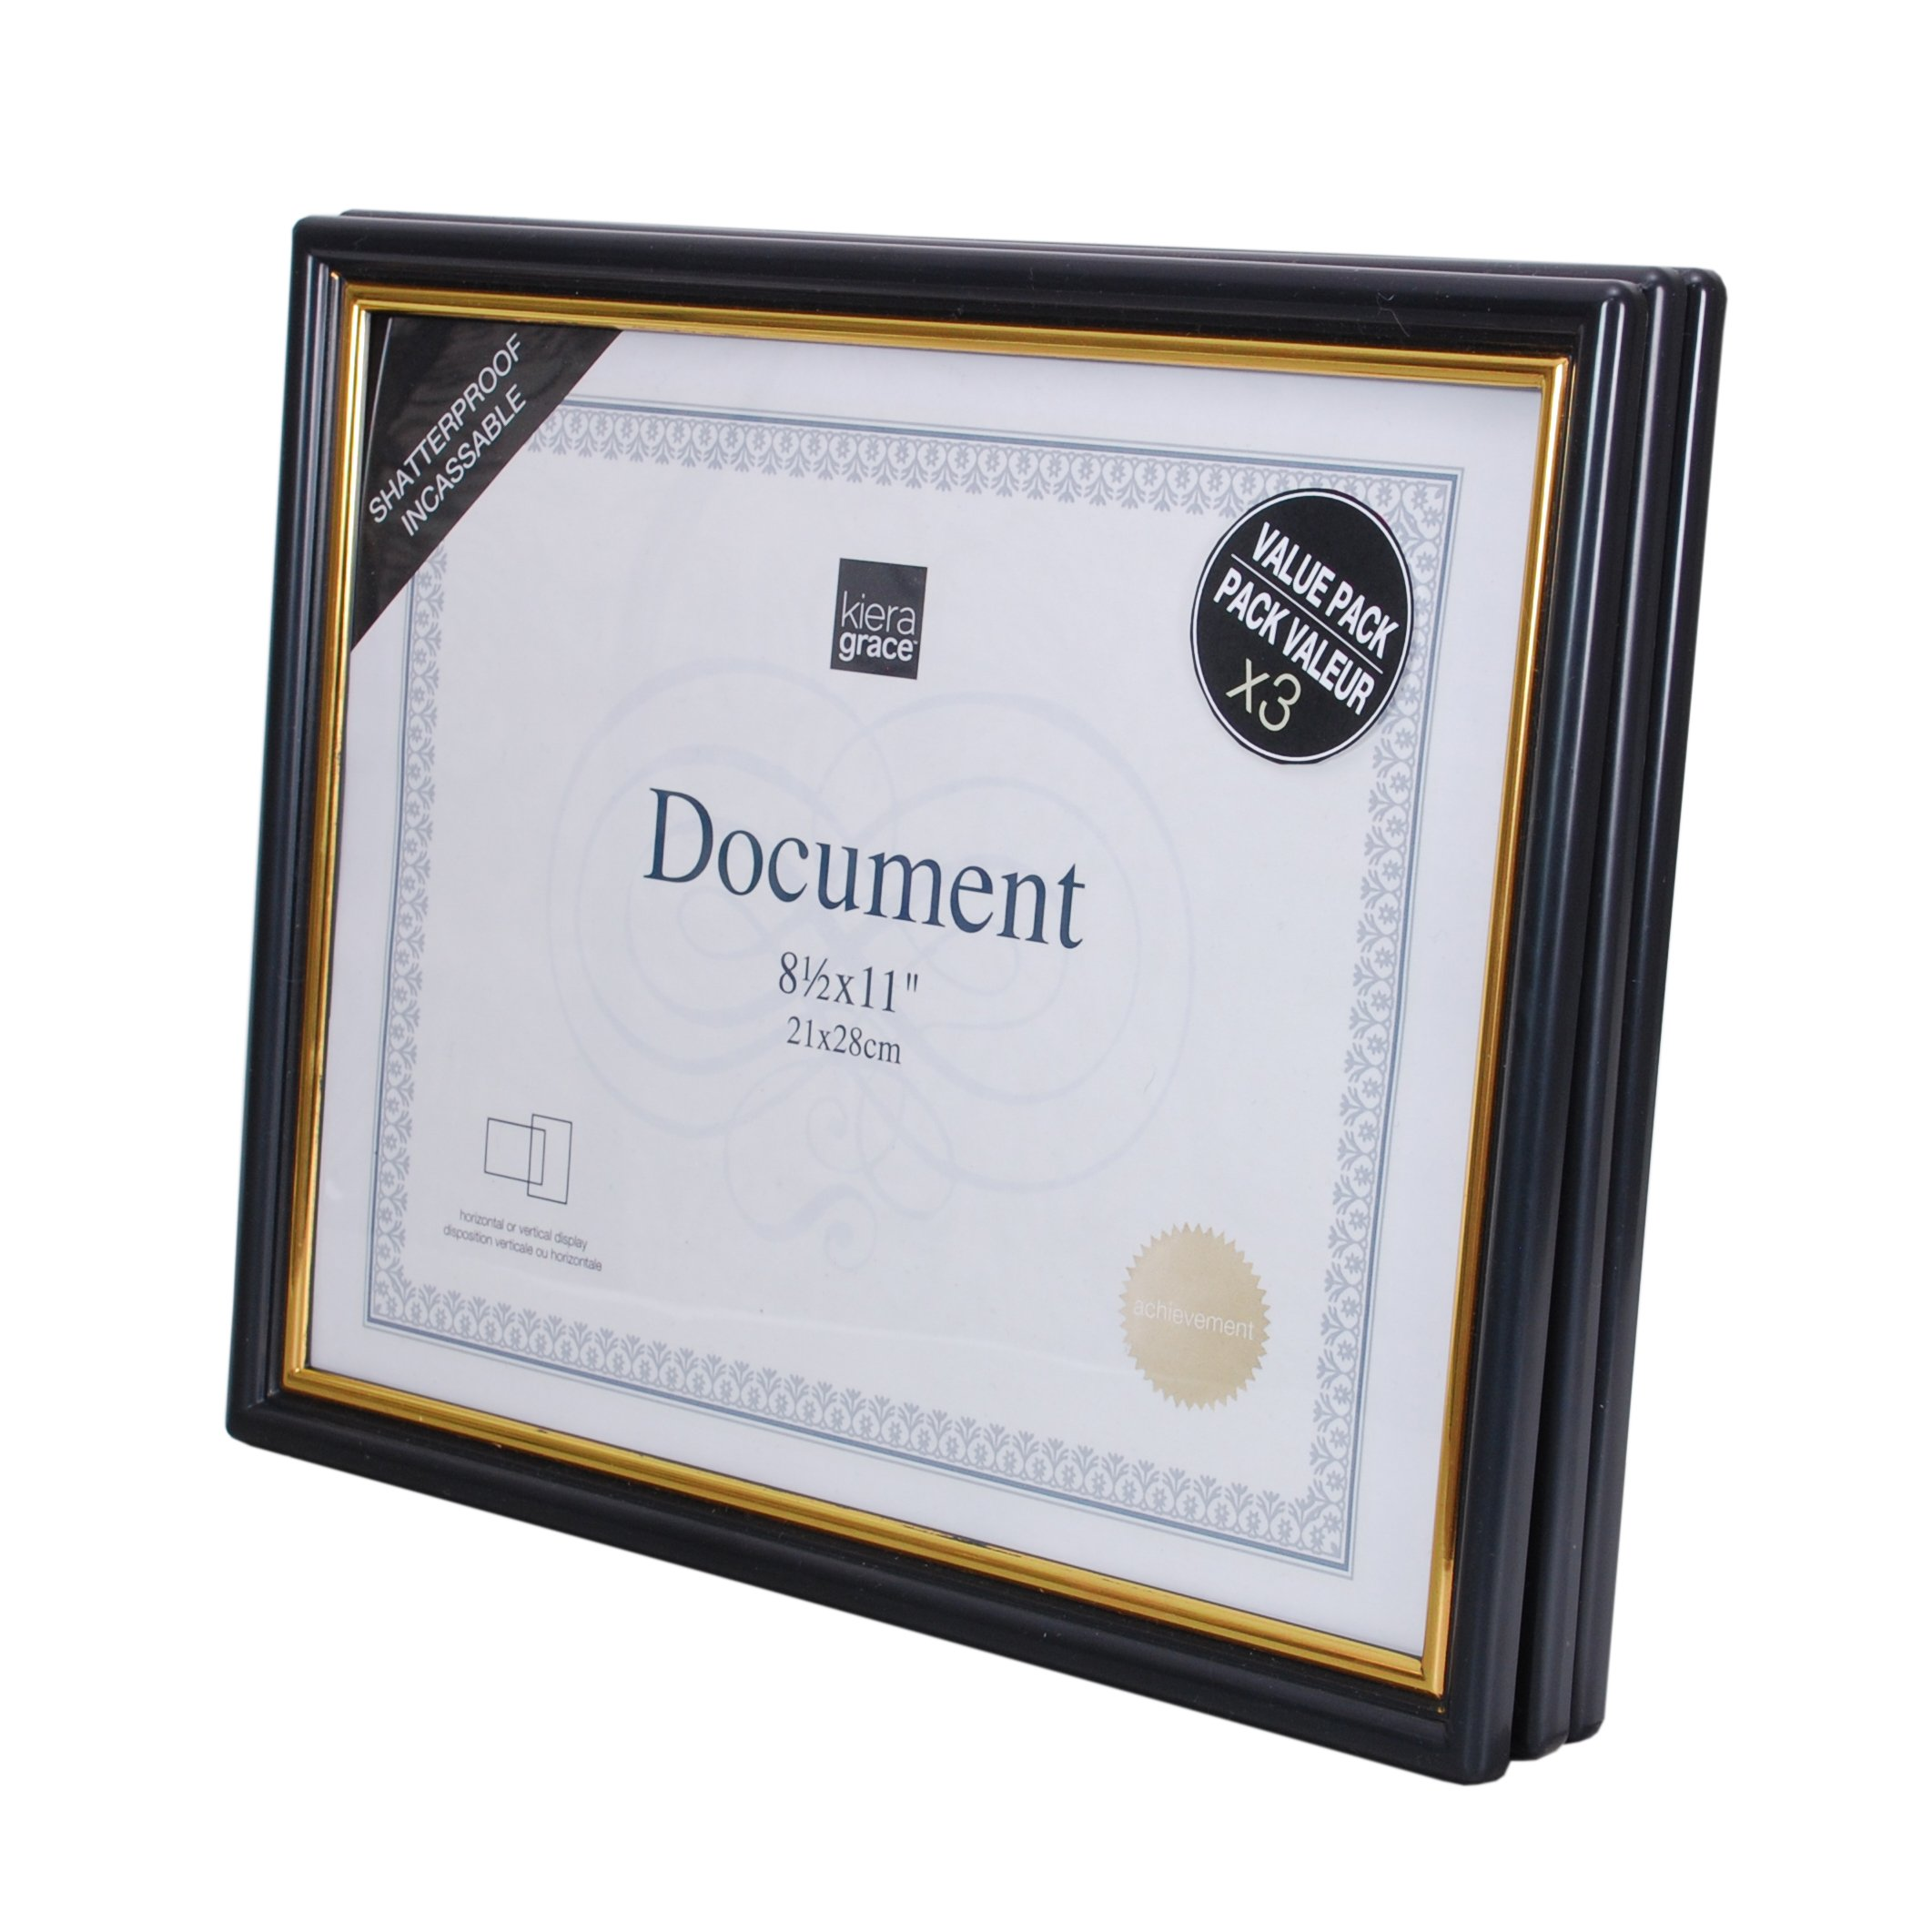 kieragrace 3 Pack Accent Document Frame with Plexi Sheet, 8.5 by 11'', Black with Gold Trim by kieragrace